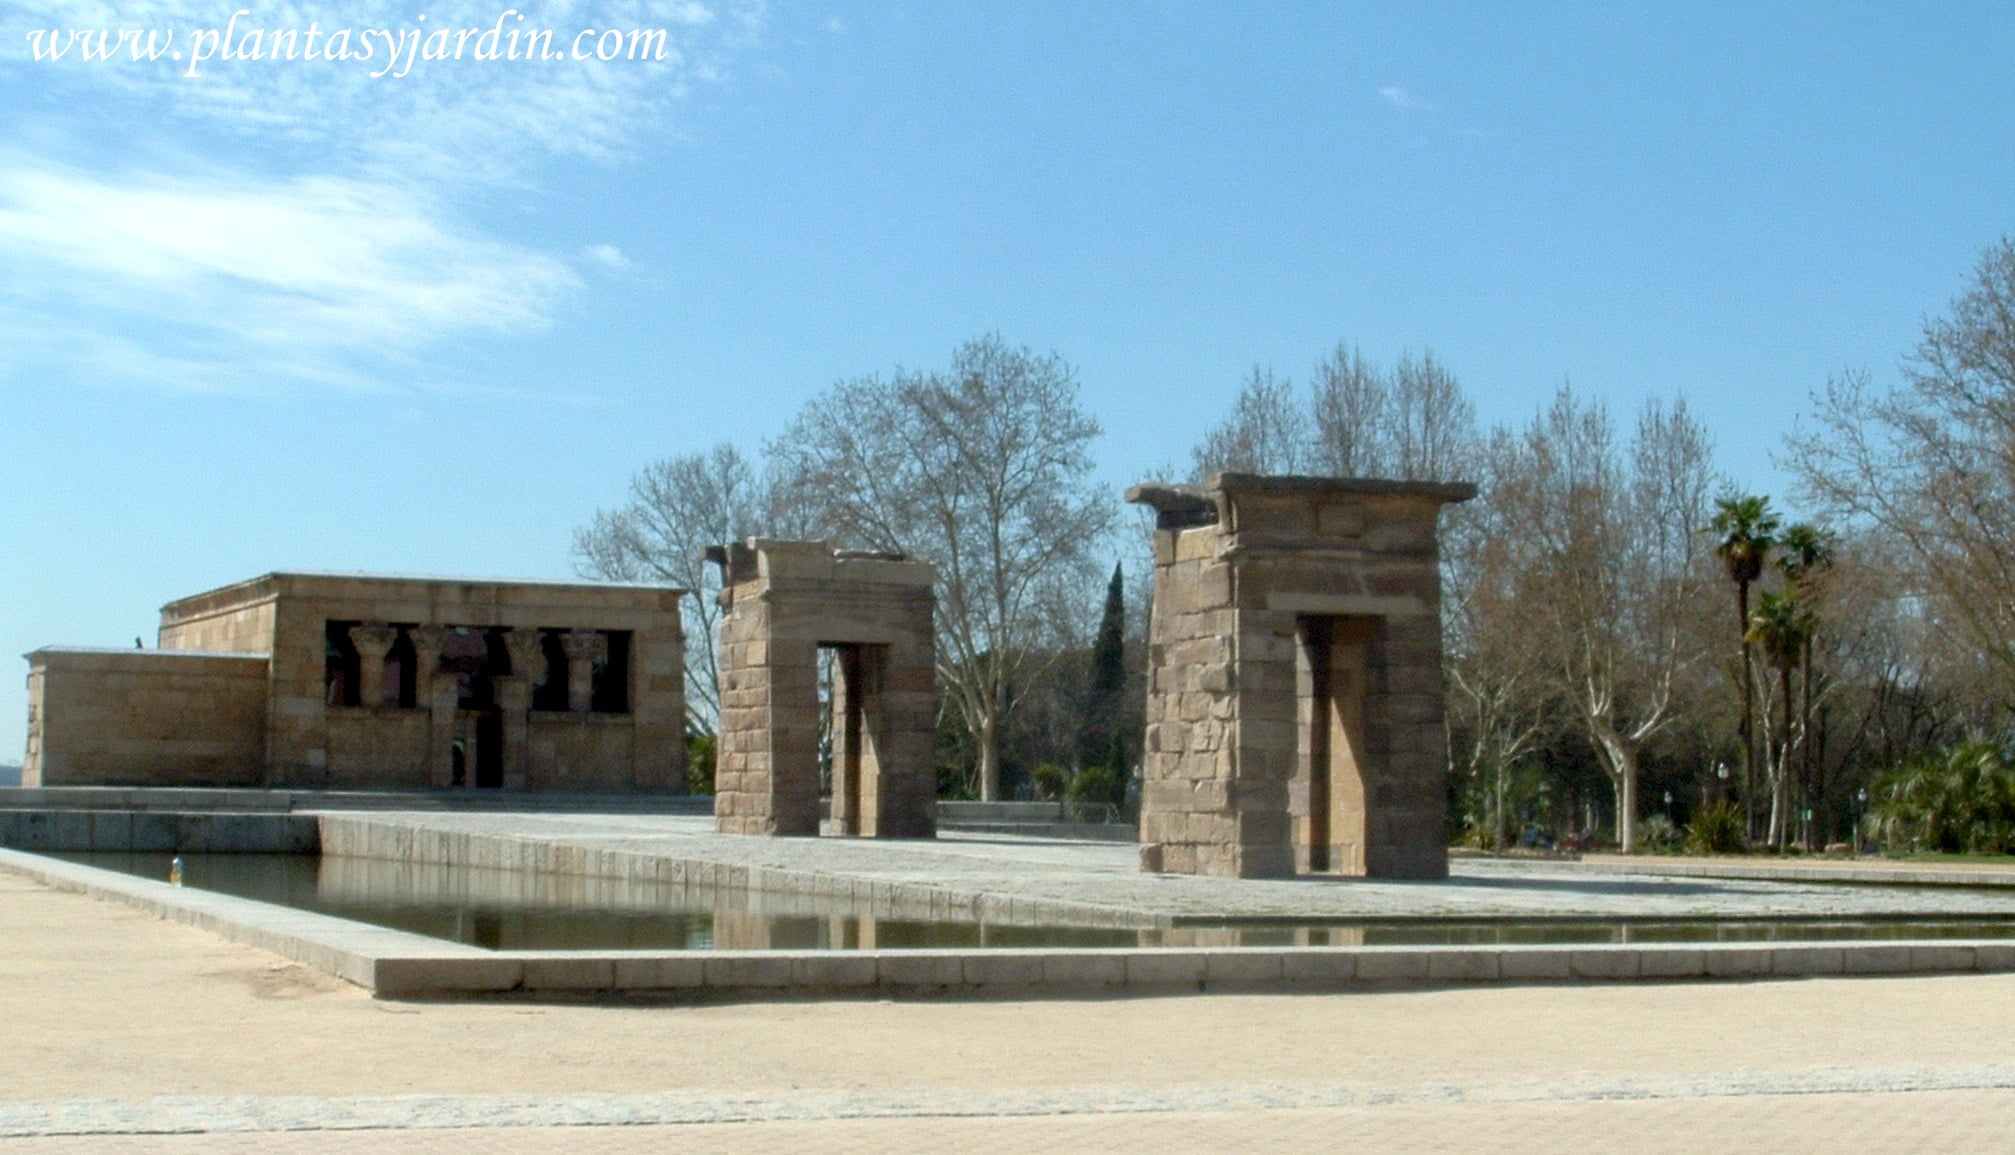 vista general del Templo de Debod en Madrid